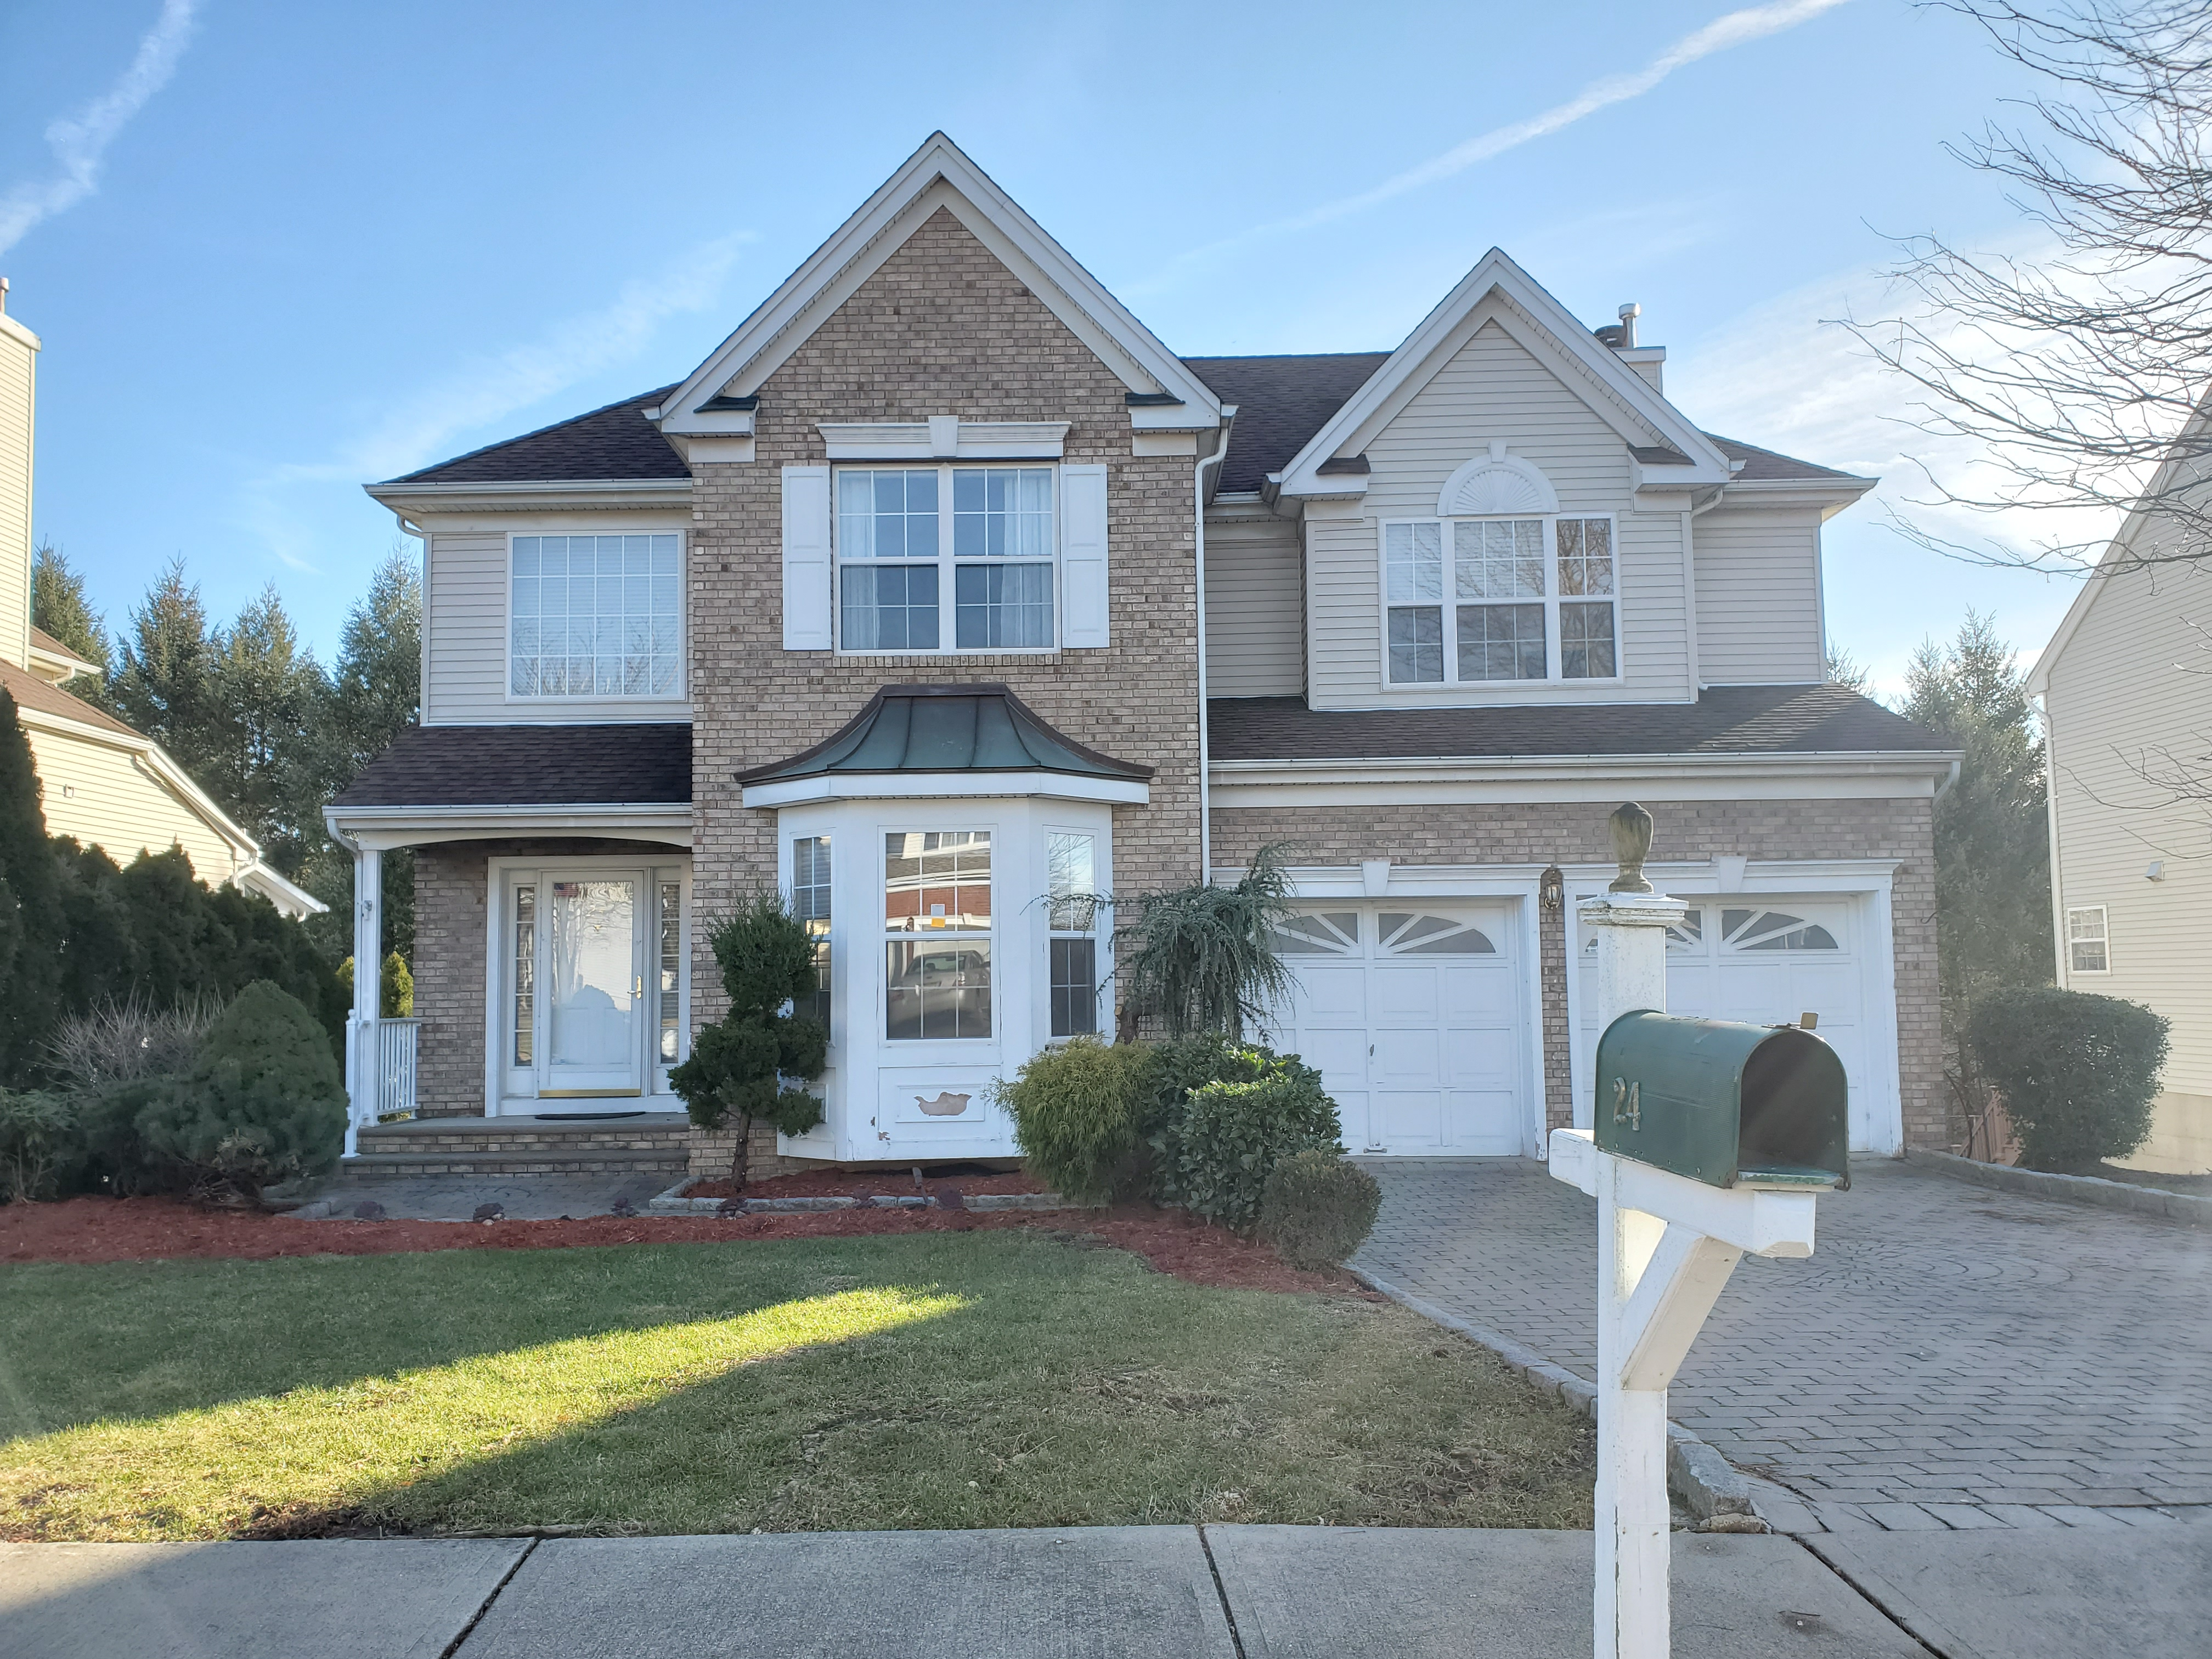 SOLD- 24 Wilmington Dr. Nutley, NJ 07110 $575,000